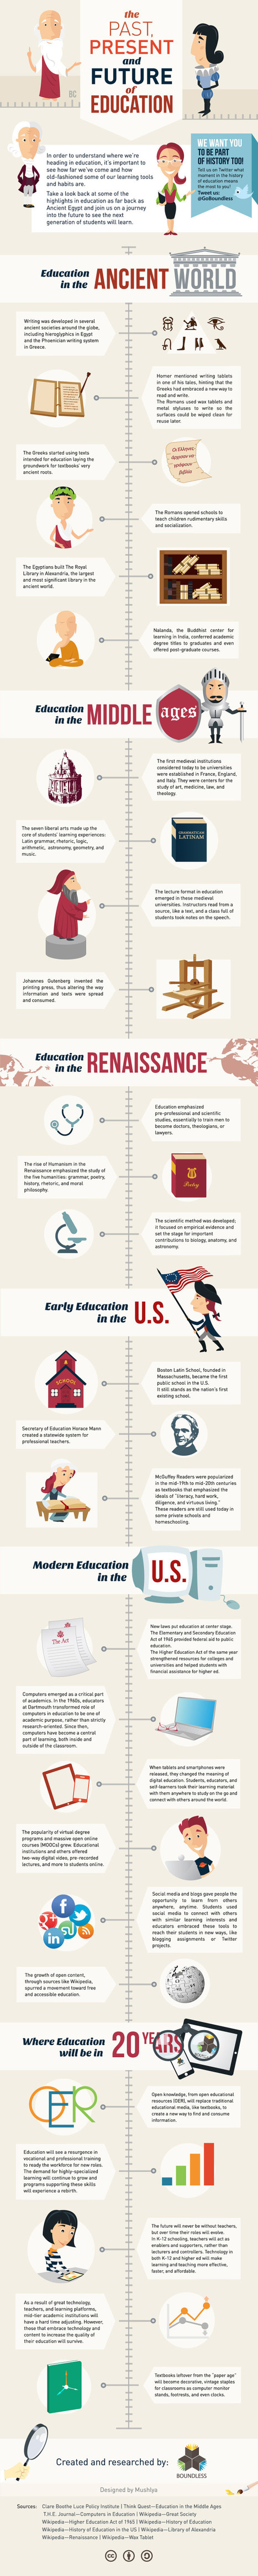 A Visual Guide To The Past, Present, And Future Of Education - Edudemic | Learning Happens Everywhere! | Scoop.it